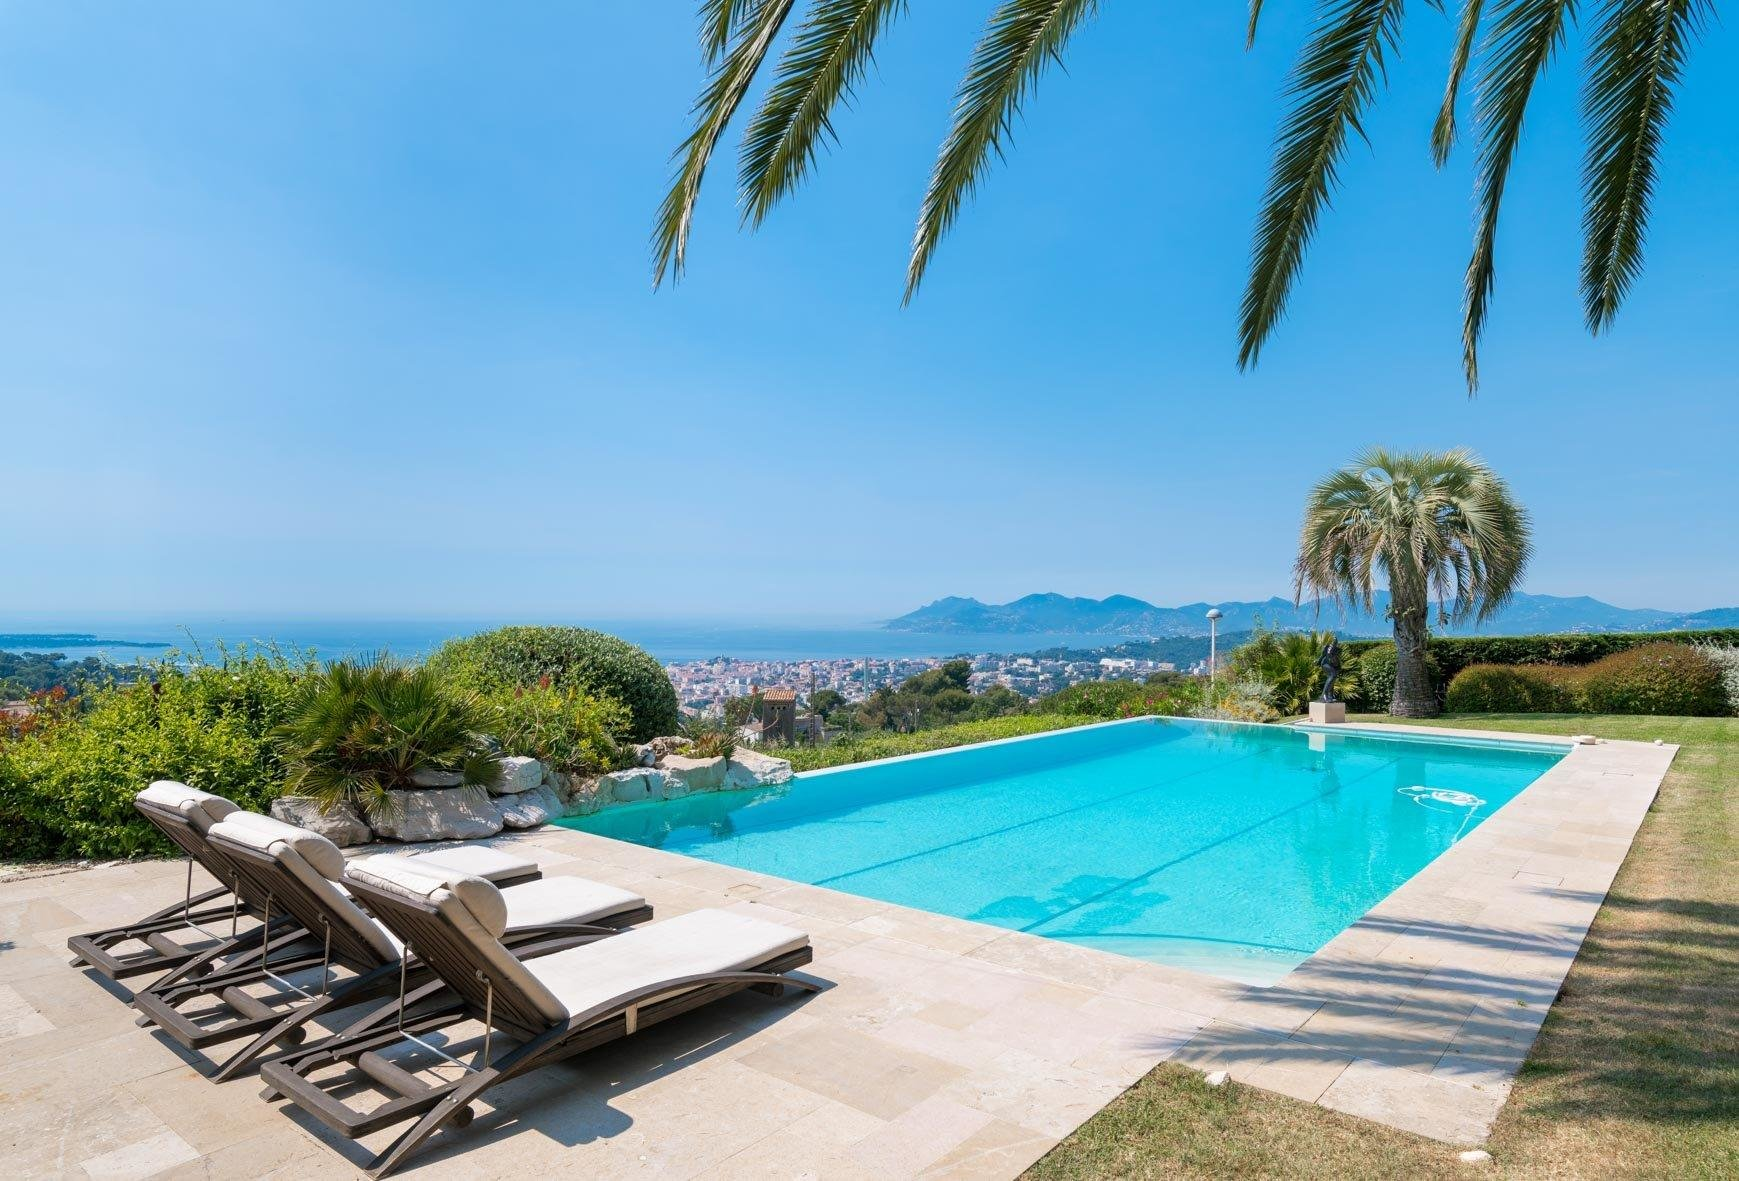 backyard of luxury villa with large pool overlooking city of cannes and sea